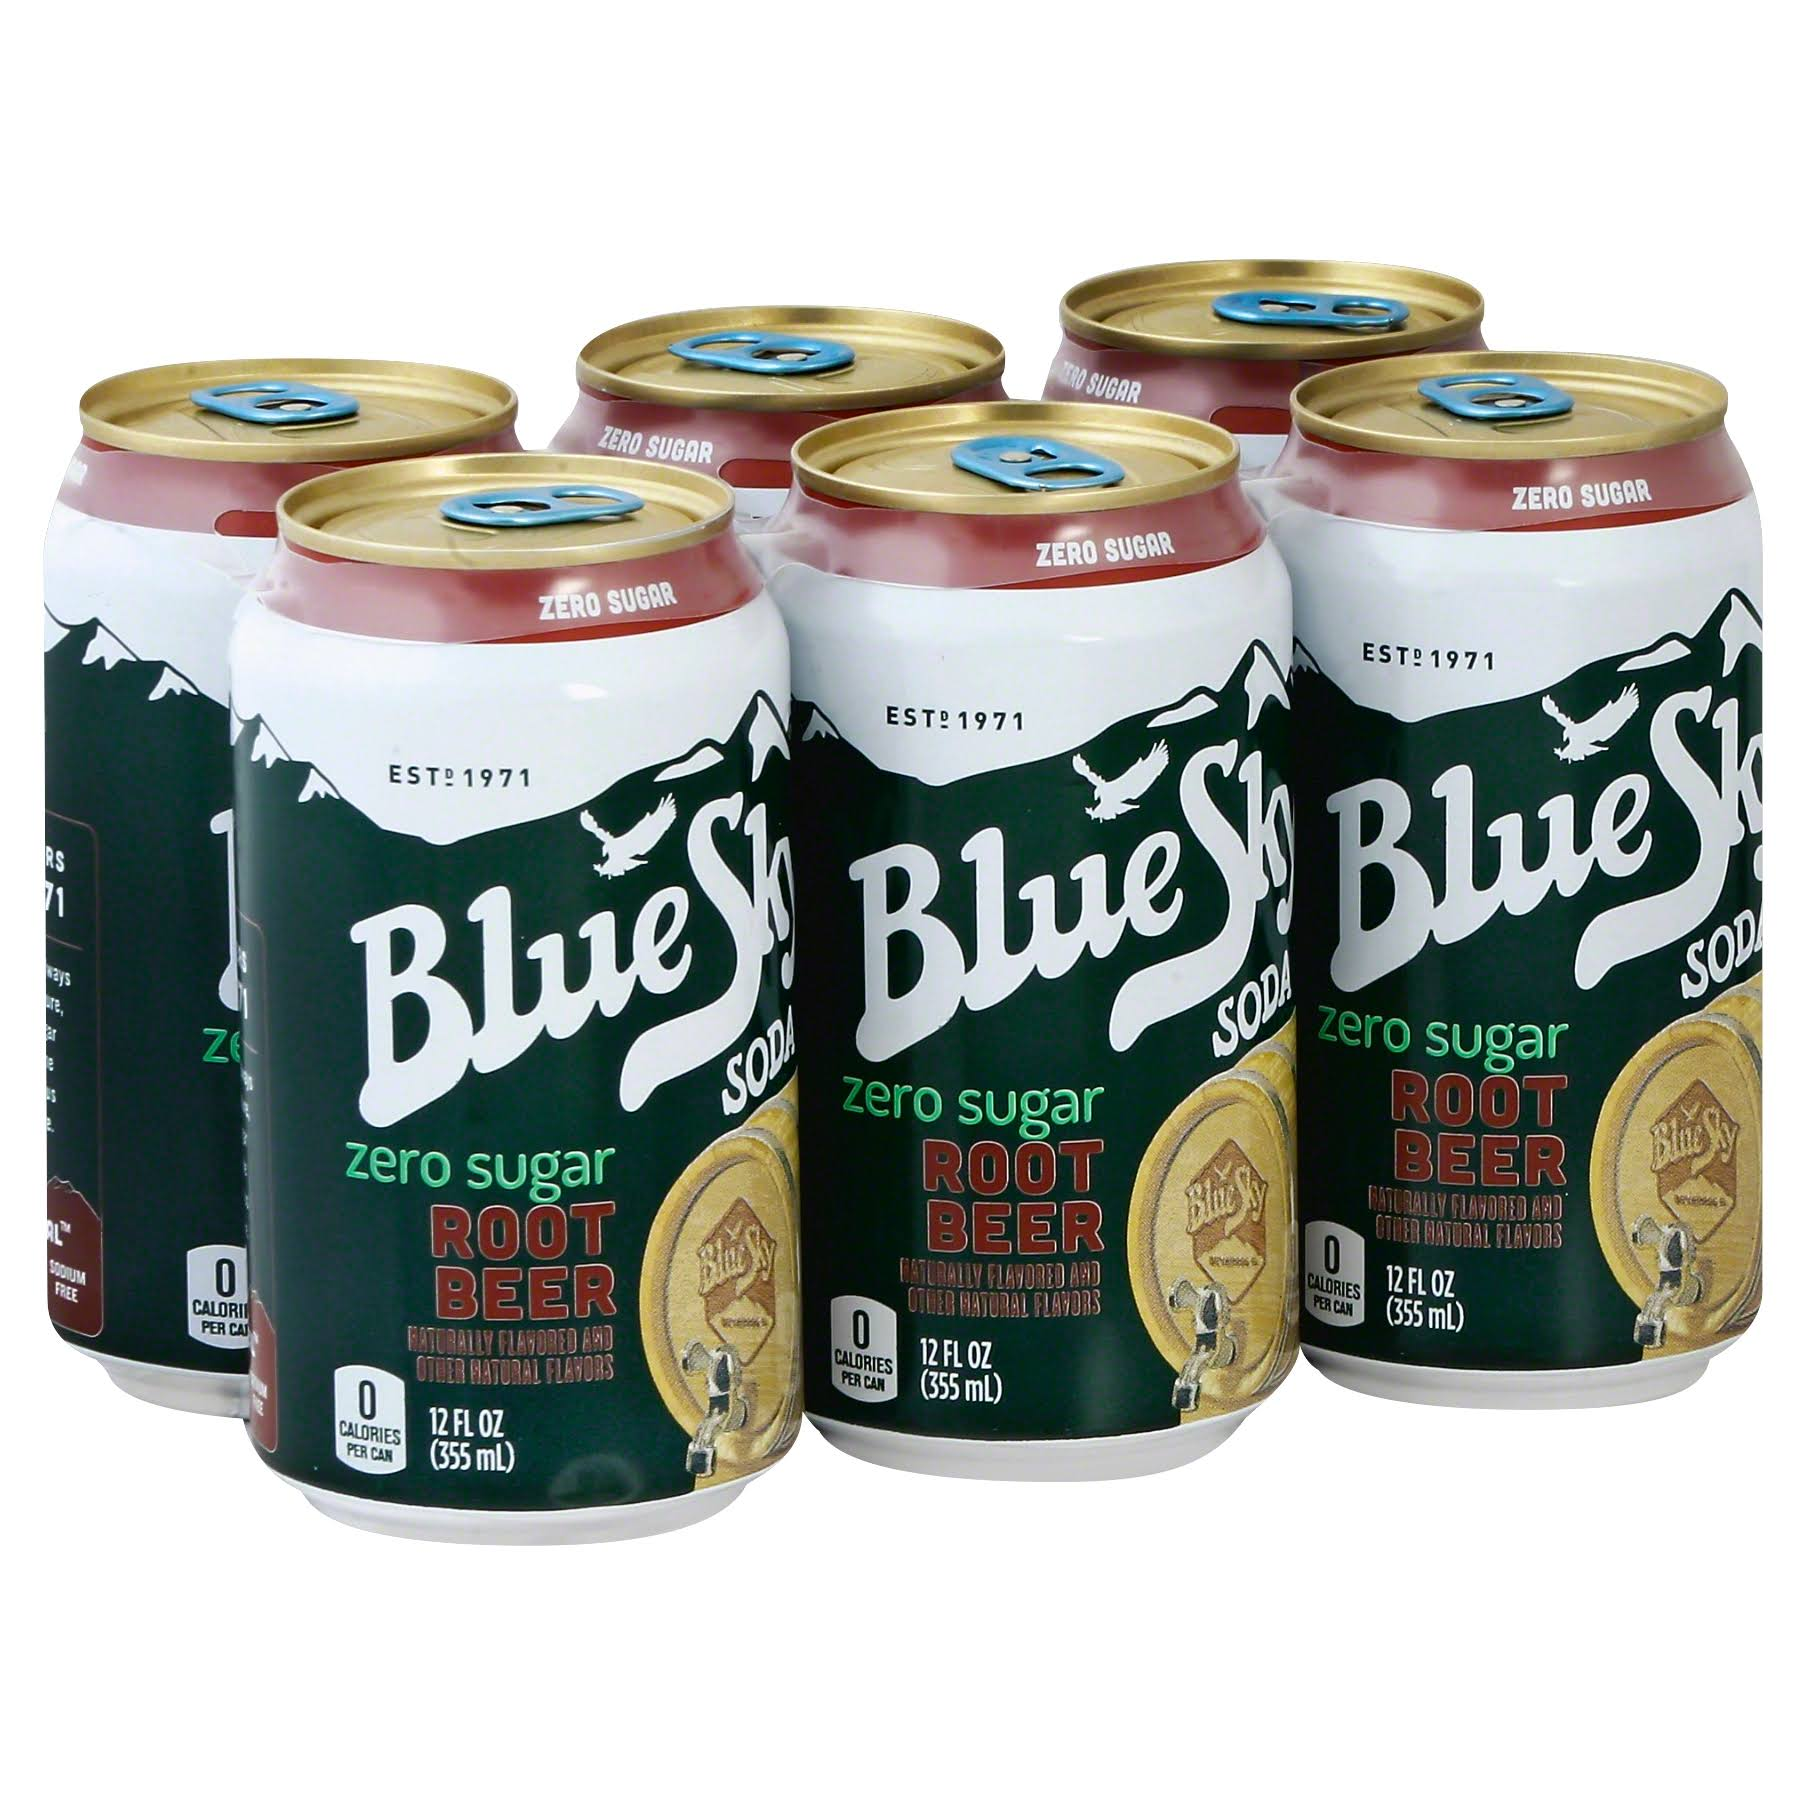 Blue Sky Soda, Zero Sugar, Root Beer - 6 pack, 12 fl oz cans